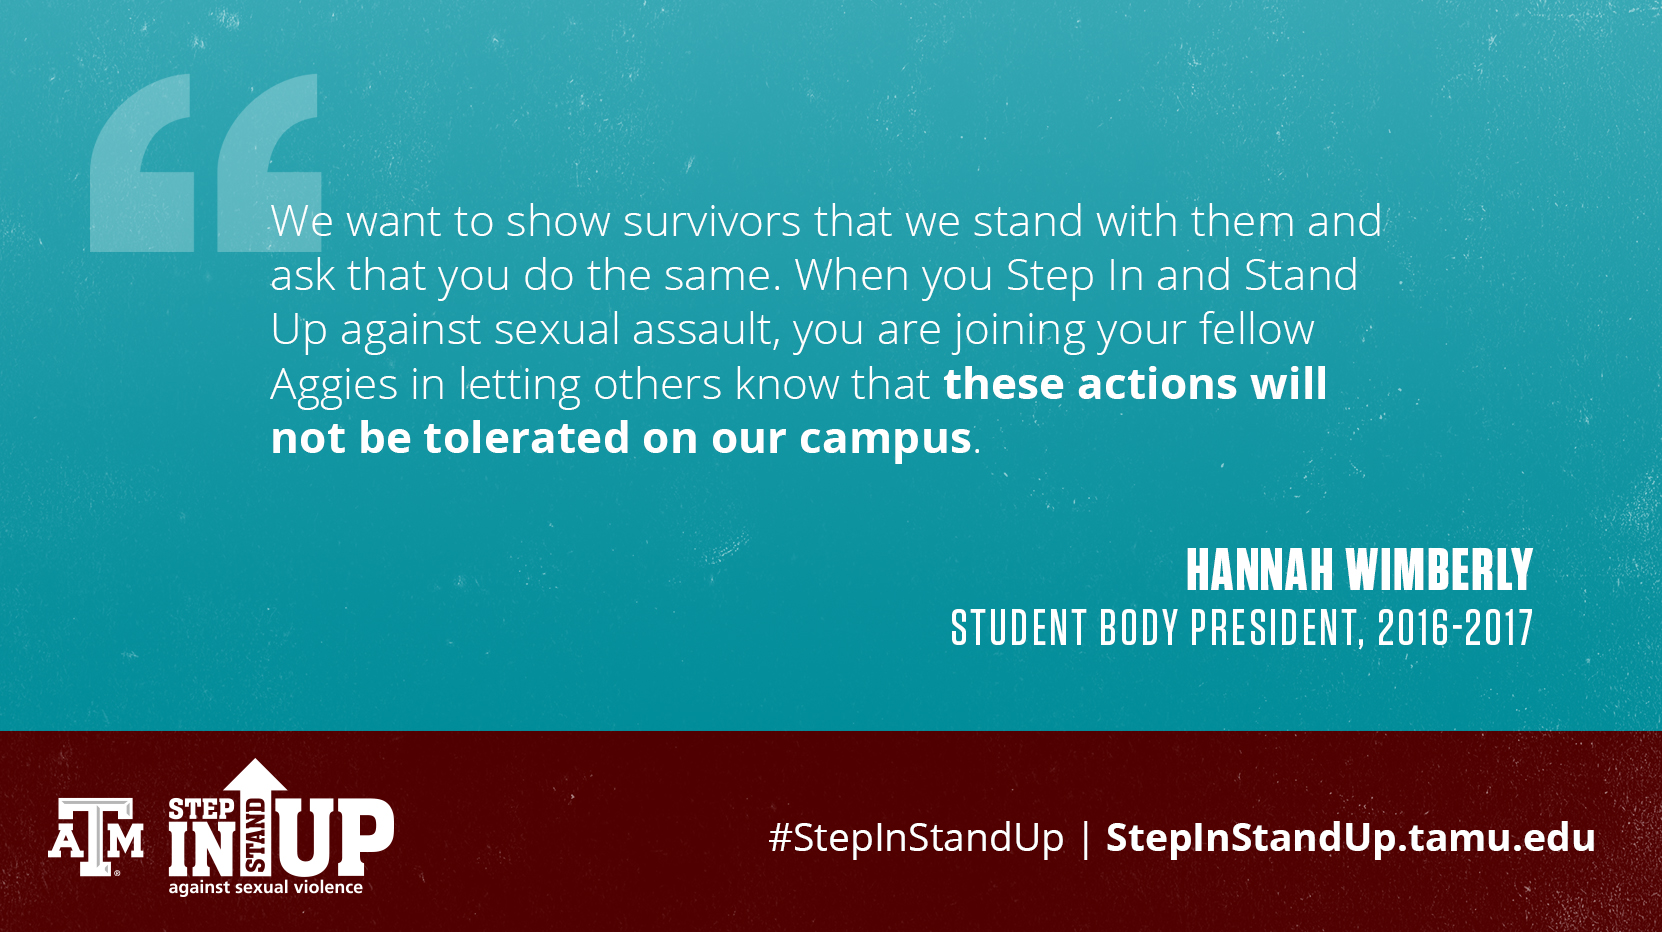 We want to show survivors that we stand with them and ask that you do the same. When you Step In and Stand Up against sexual assault, you are joining your fellow Aggies in letting others know that these actions will not be tolerated on our campus. - Hannah Wimberly Student Body President, 2016-2017